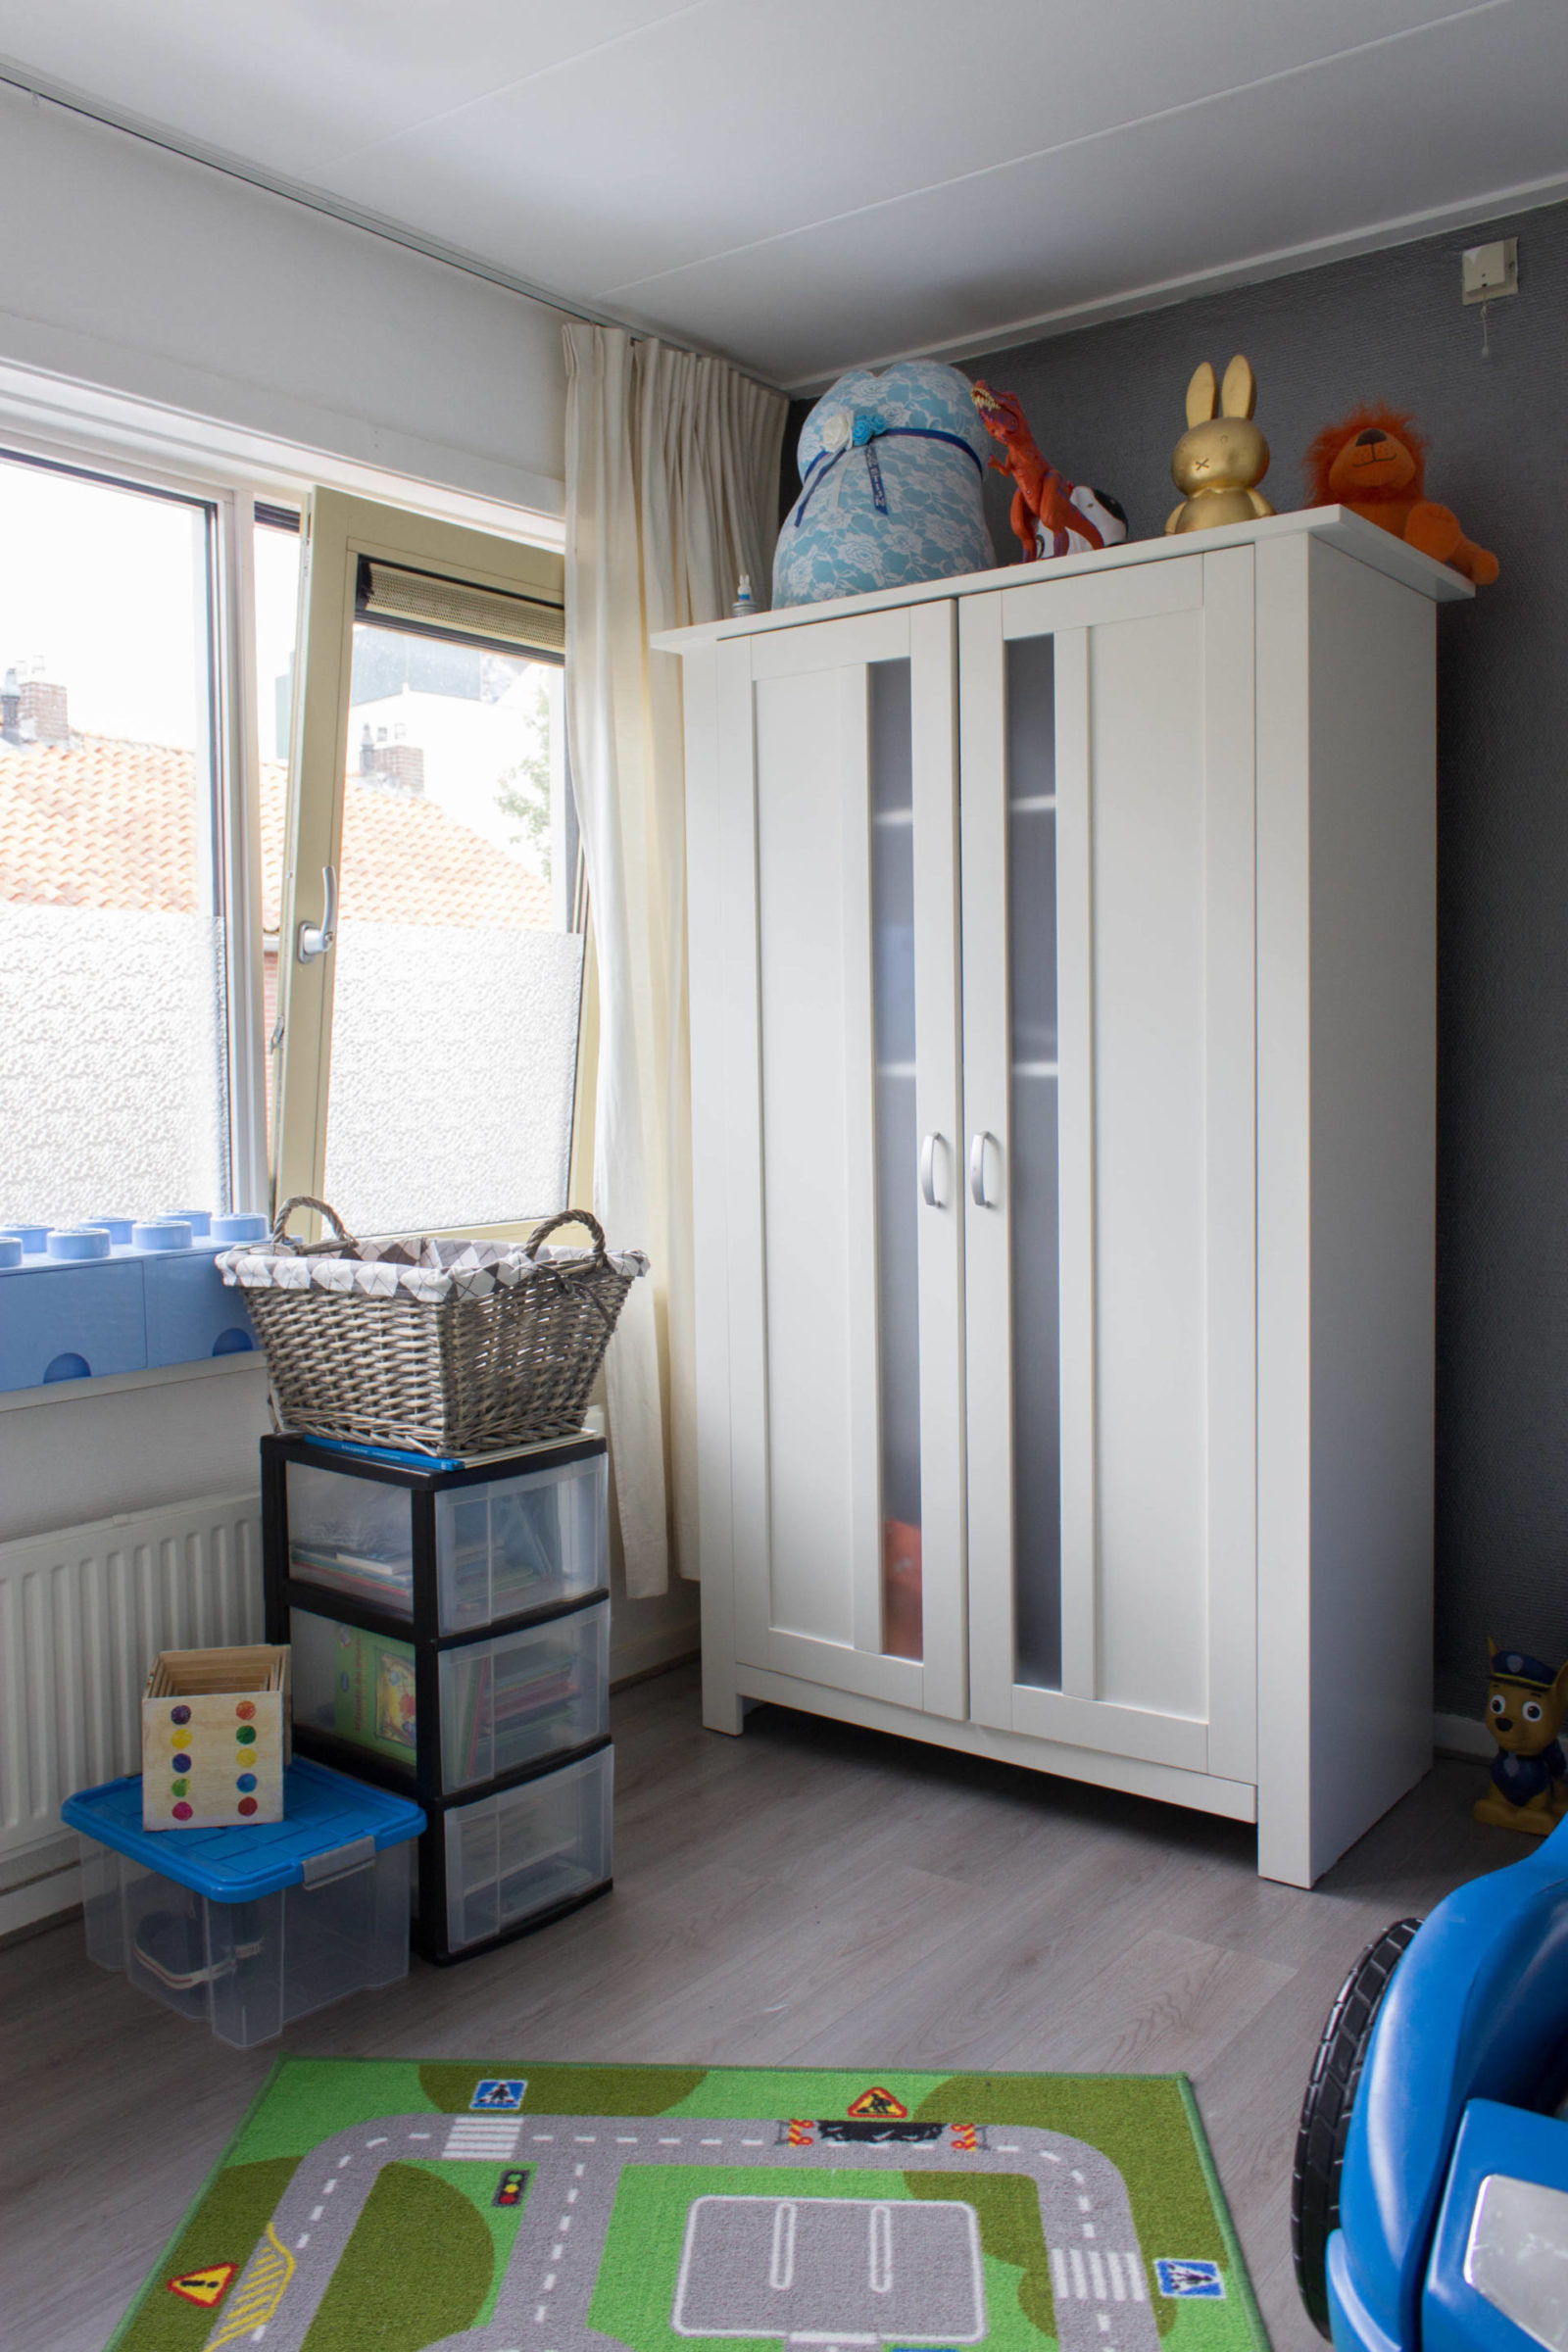 Gedeelde kinderkamer make-over